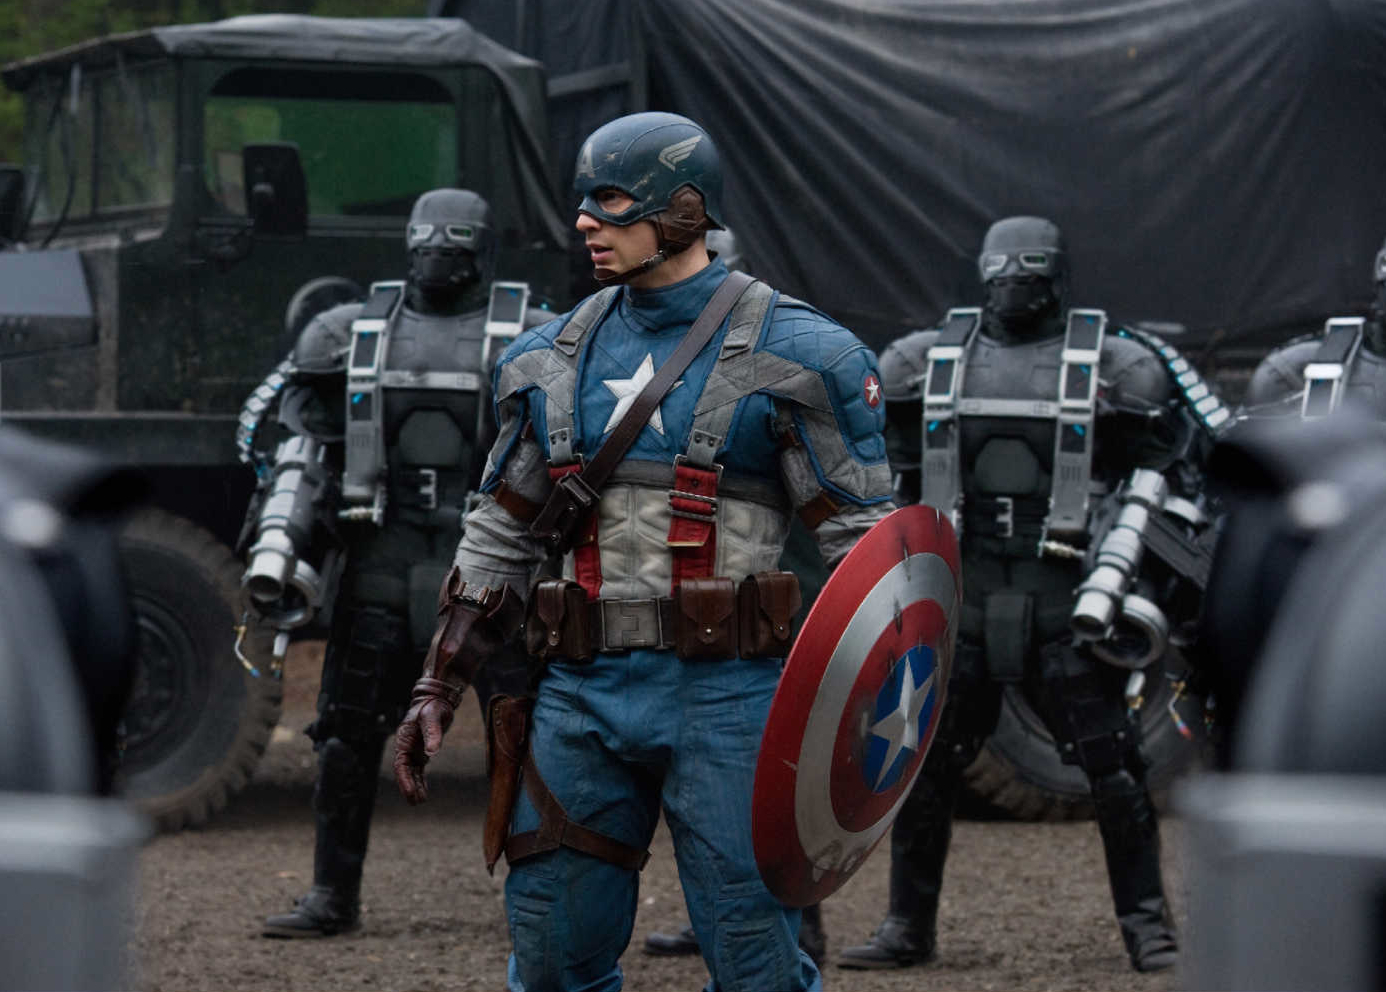 Chris Evans as Captain America, this is the costume that you'll see in